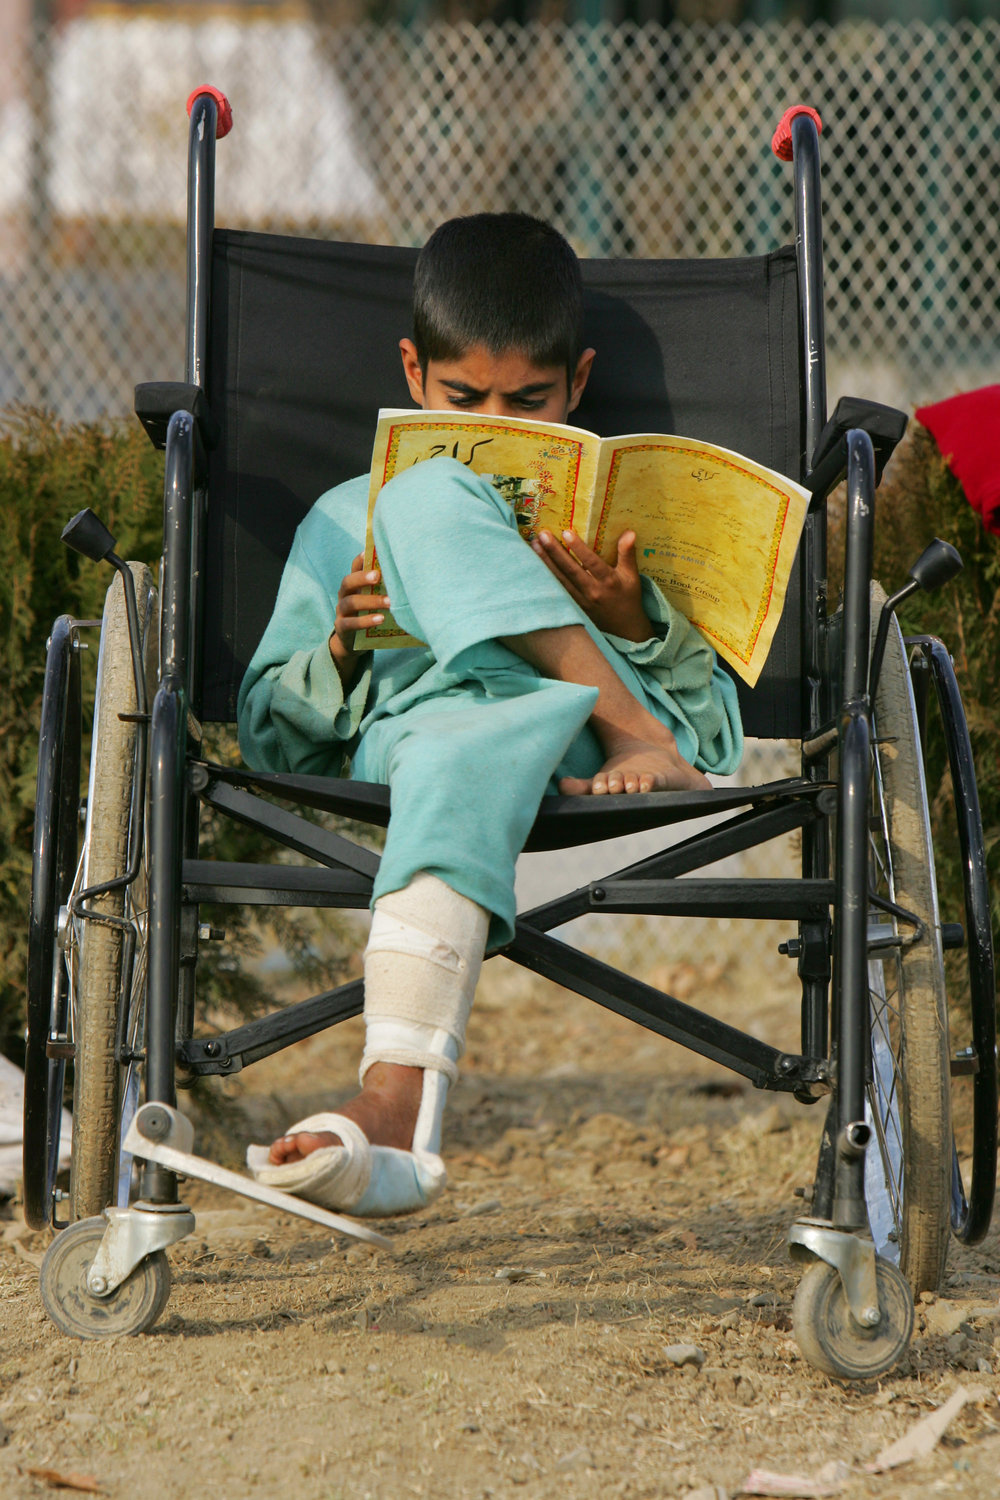 Boy in wheel chair reading a book